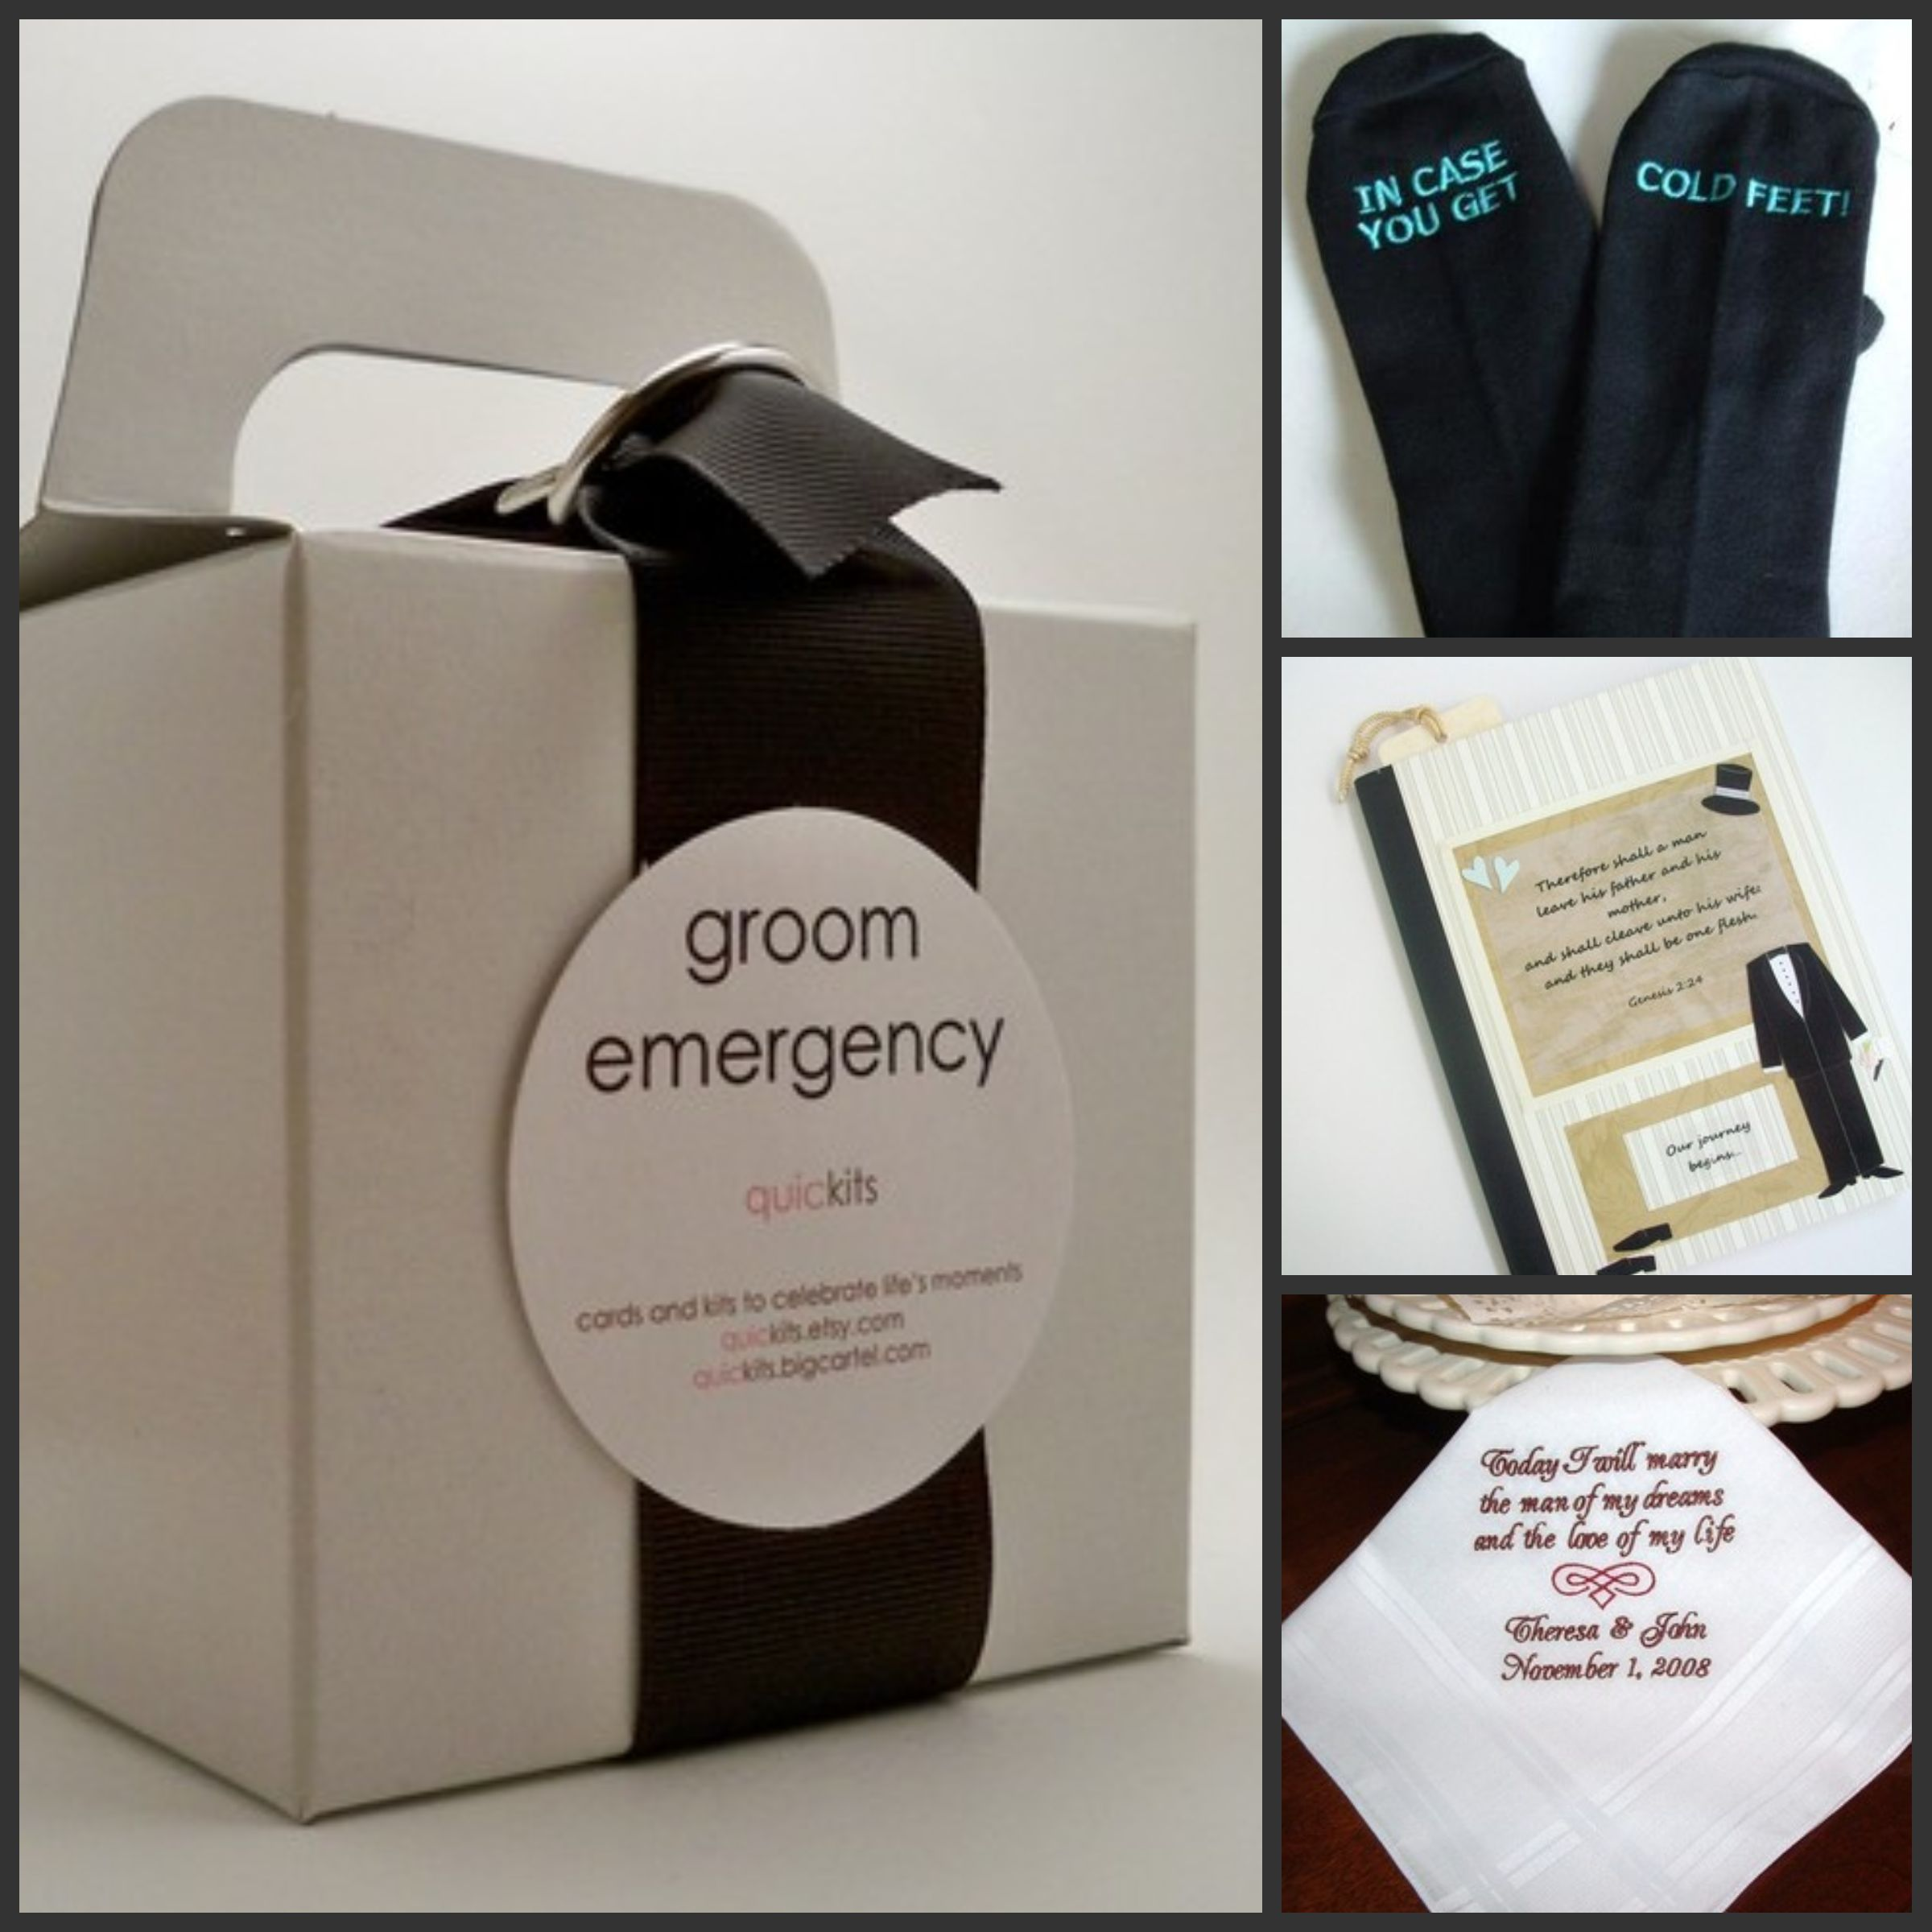 Wedding Day Gift For Bride From Groom : personal gifts for your groom clockwise from left groom emergency kit ...